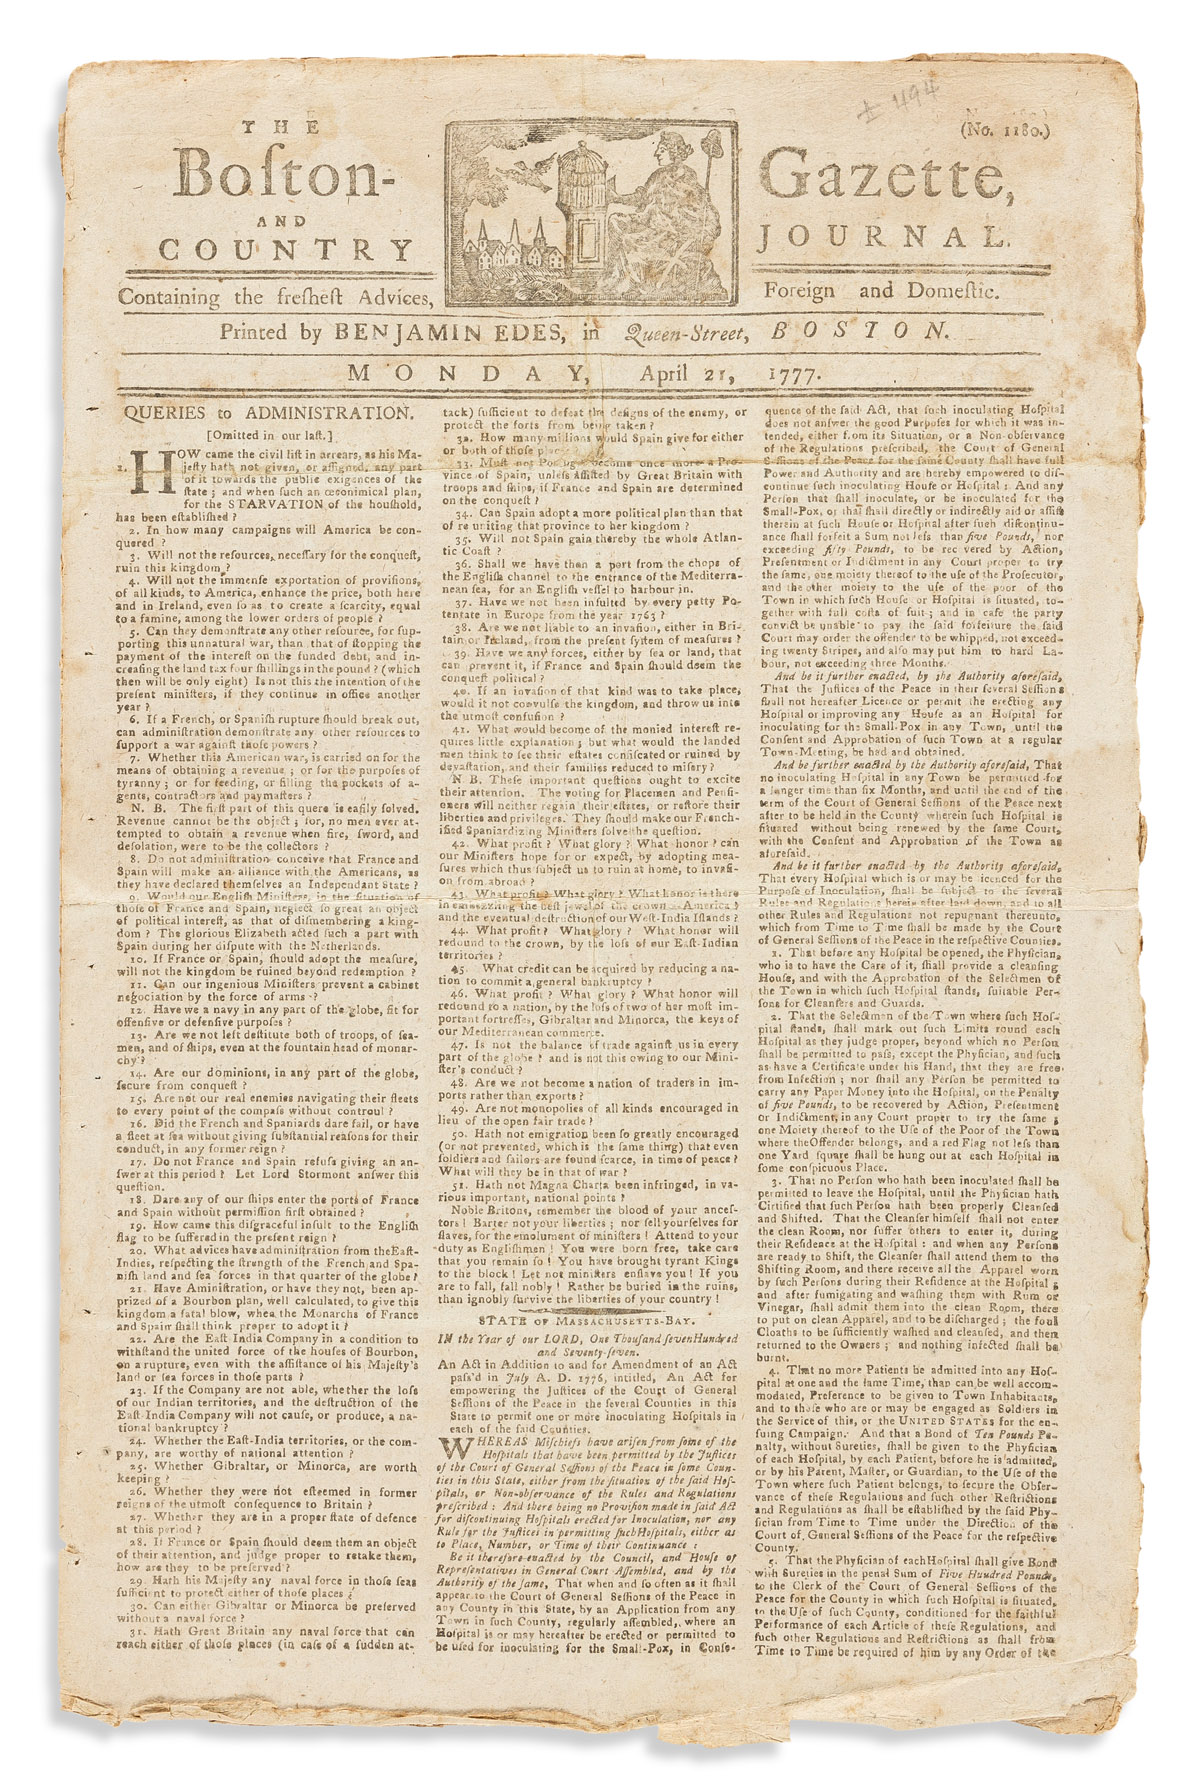 (AMERICAN REVOLUTION--1777.) Issue of the Boston-Gazette and Country Journal.